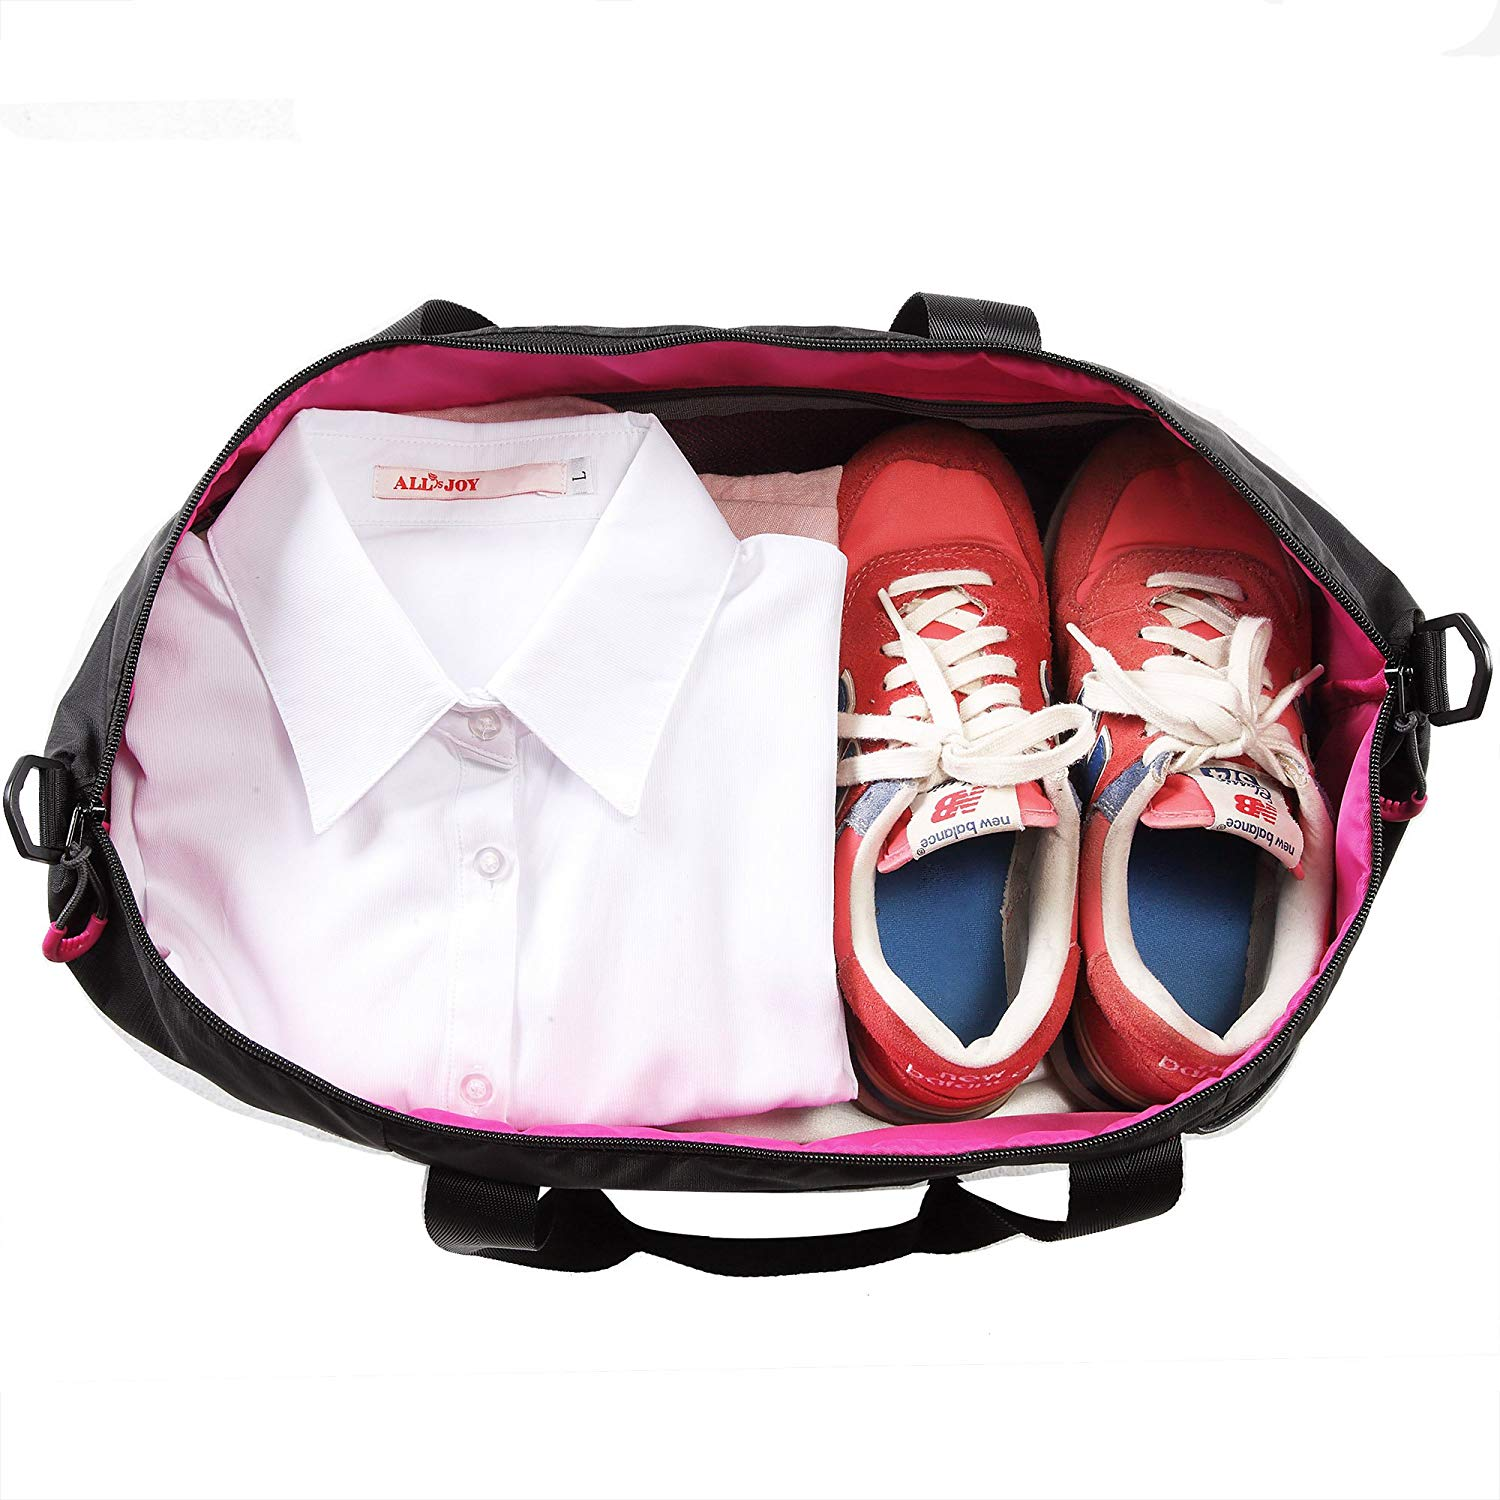 Sport  Gym Tote Bag for Women